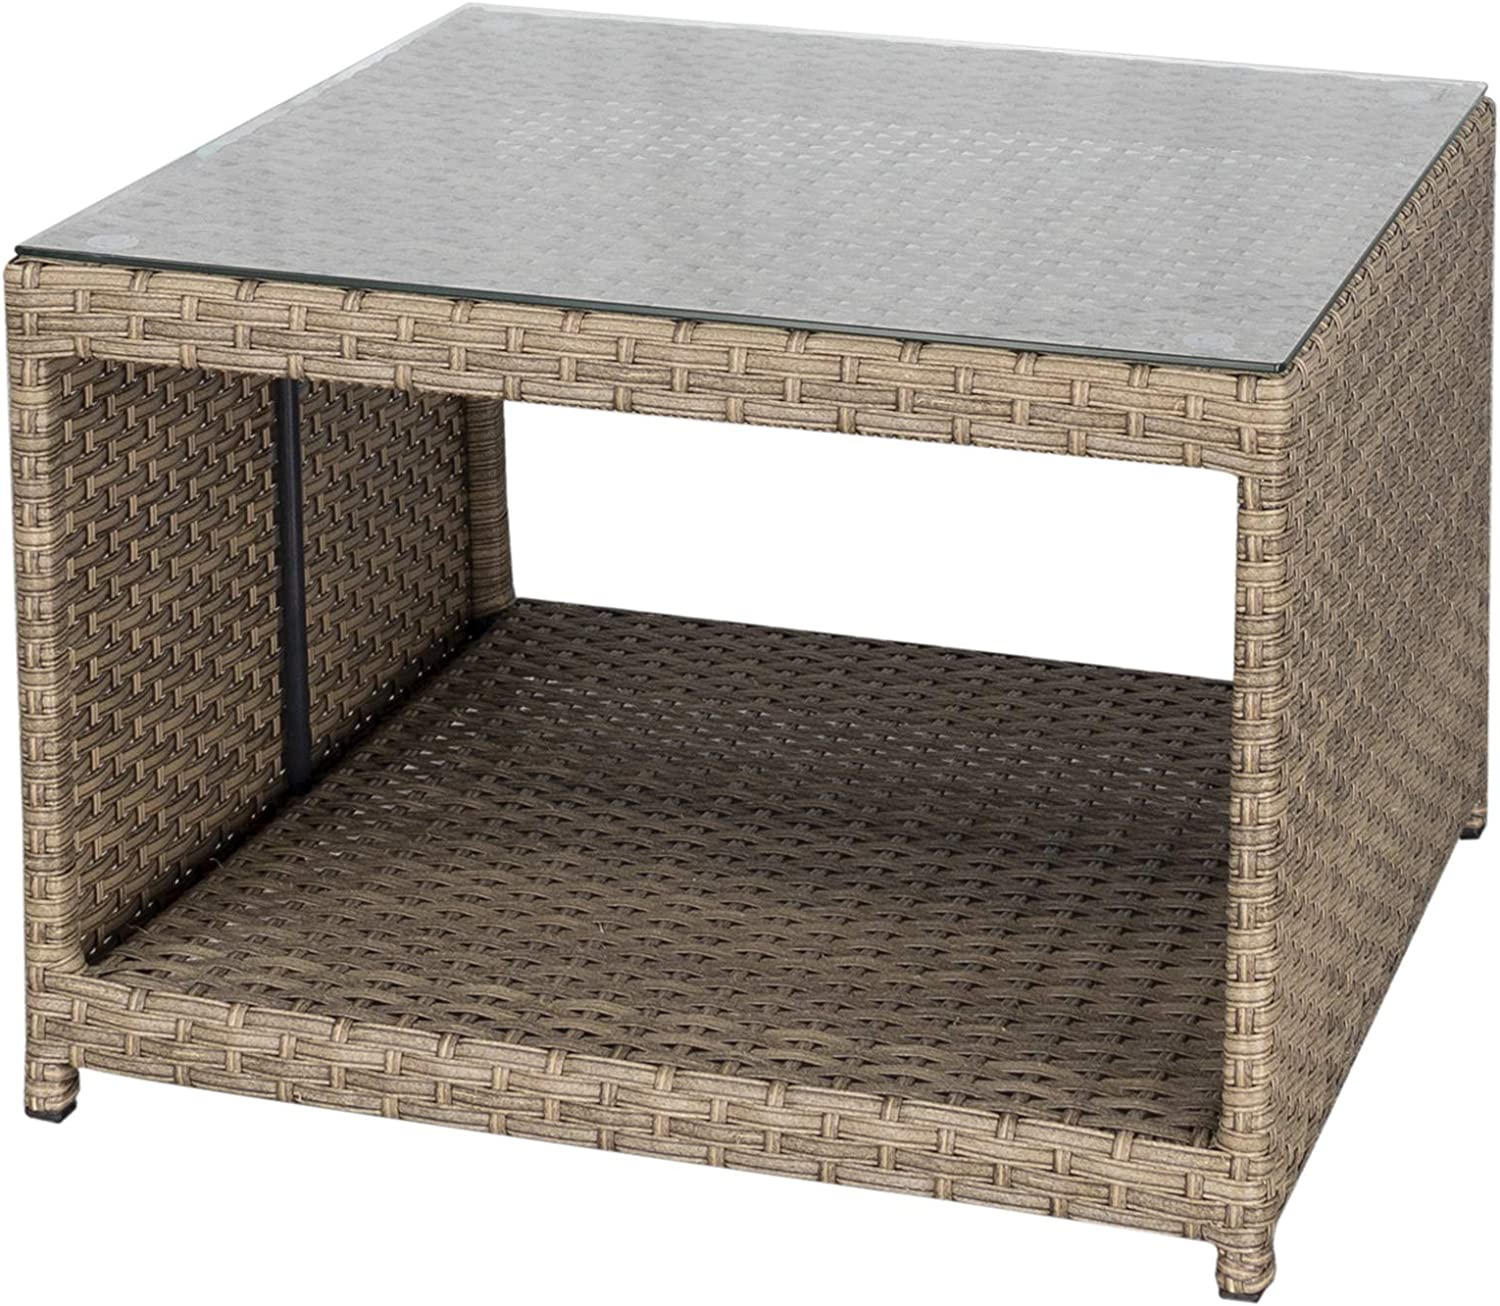 DIMAR garden Outdoor Coffee Table Wicker Patio Furniture Conversation Set Rattan Patio Coffee Tables with Glass Top and Storage Shelf (25.2in, Light Brown)